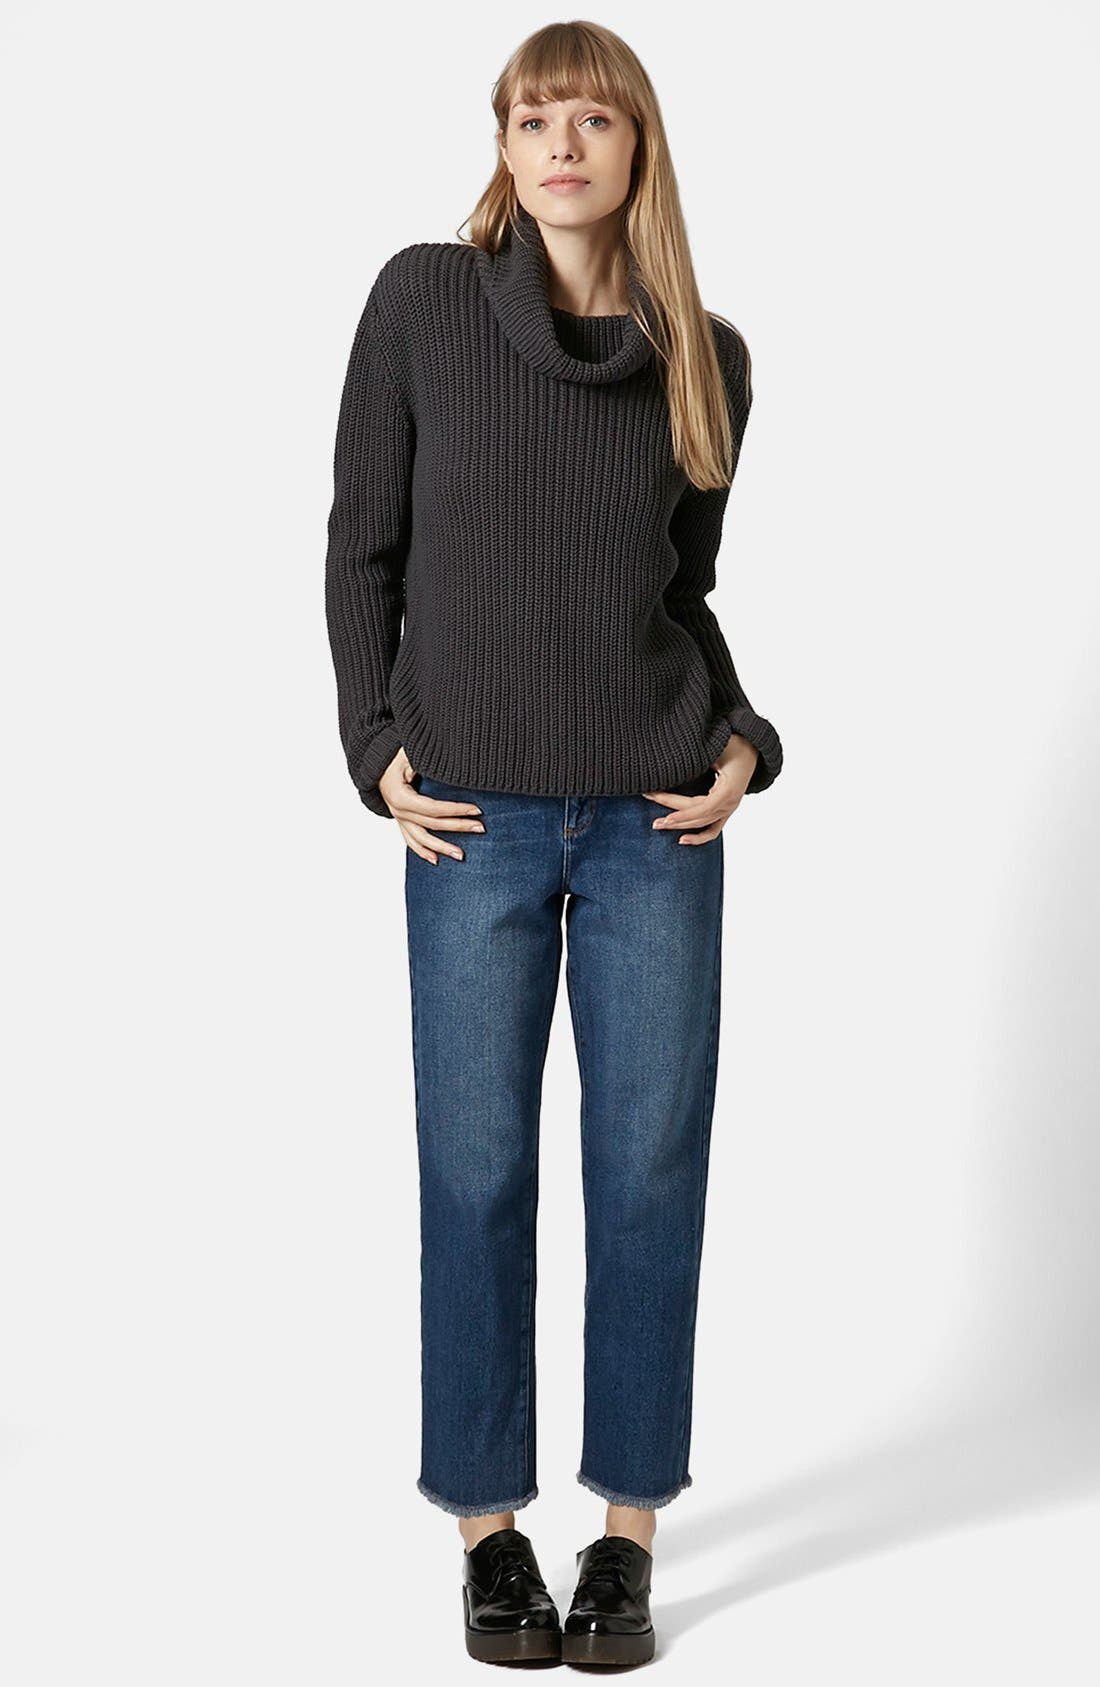 TOPSHOP BOUTIQUE,                             Roll Neck Fisherman Sweater,                             Alternate thumbnail 5, color,                             021